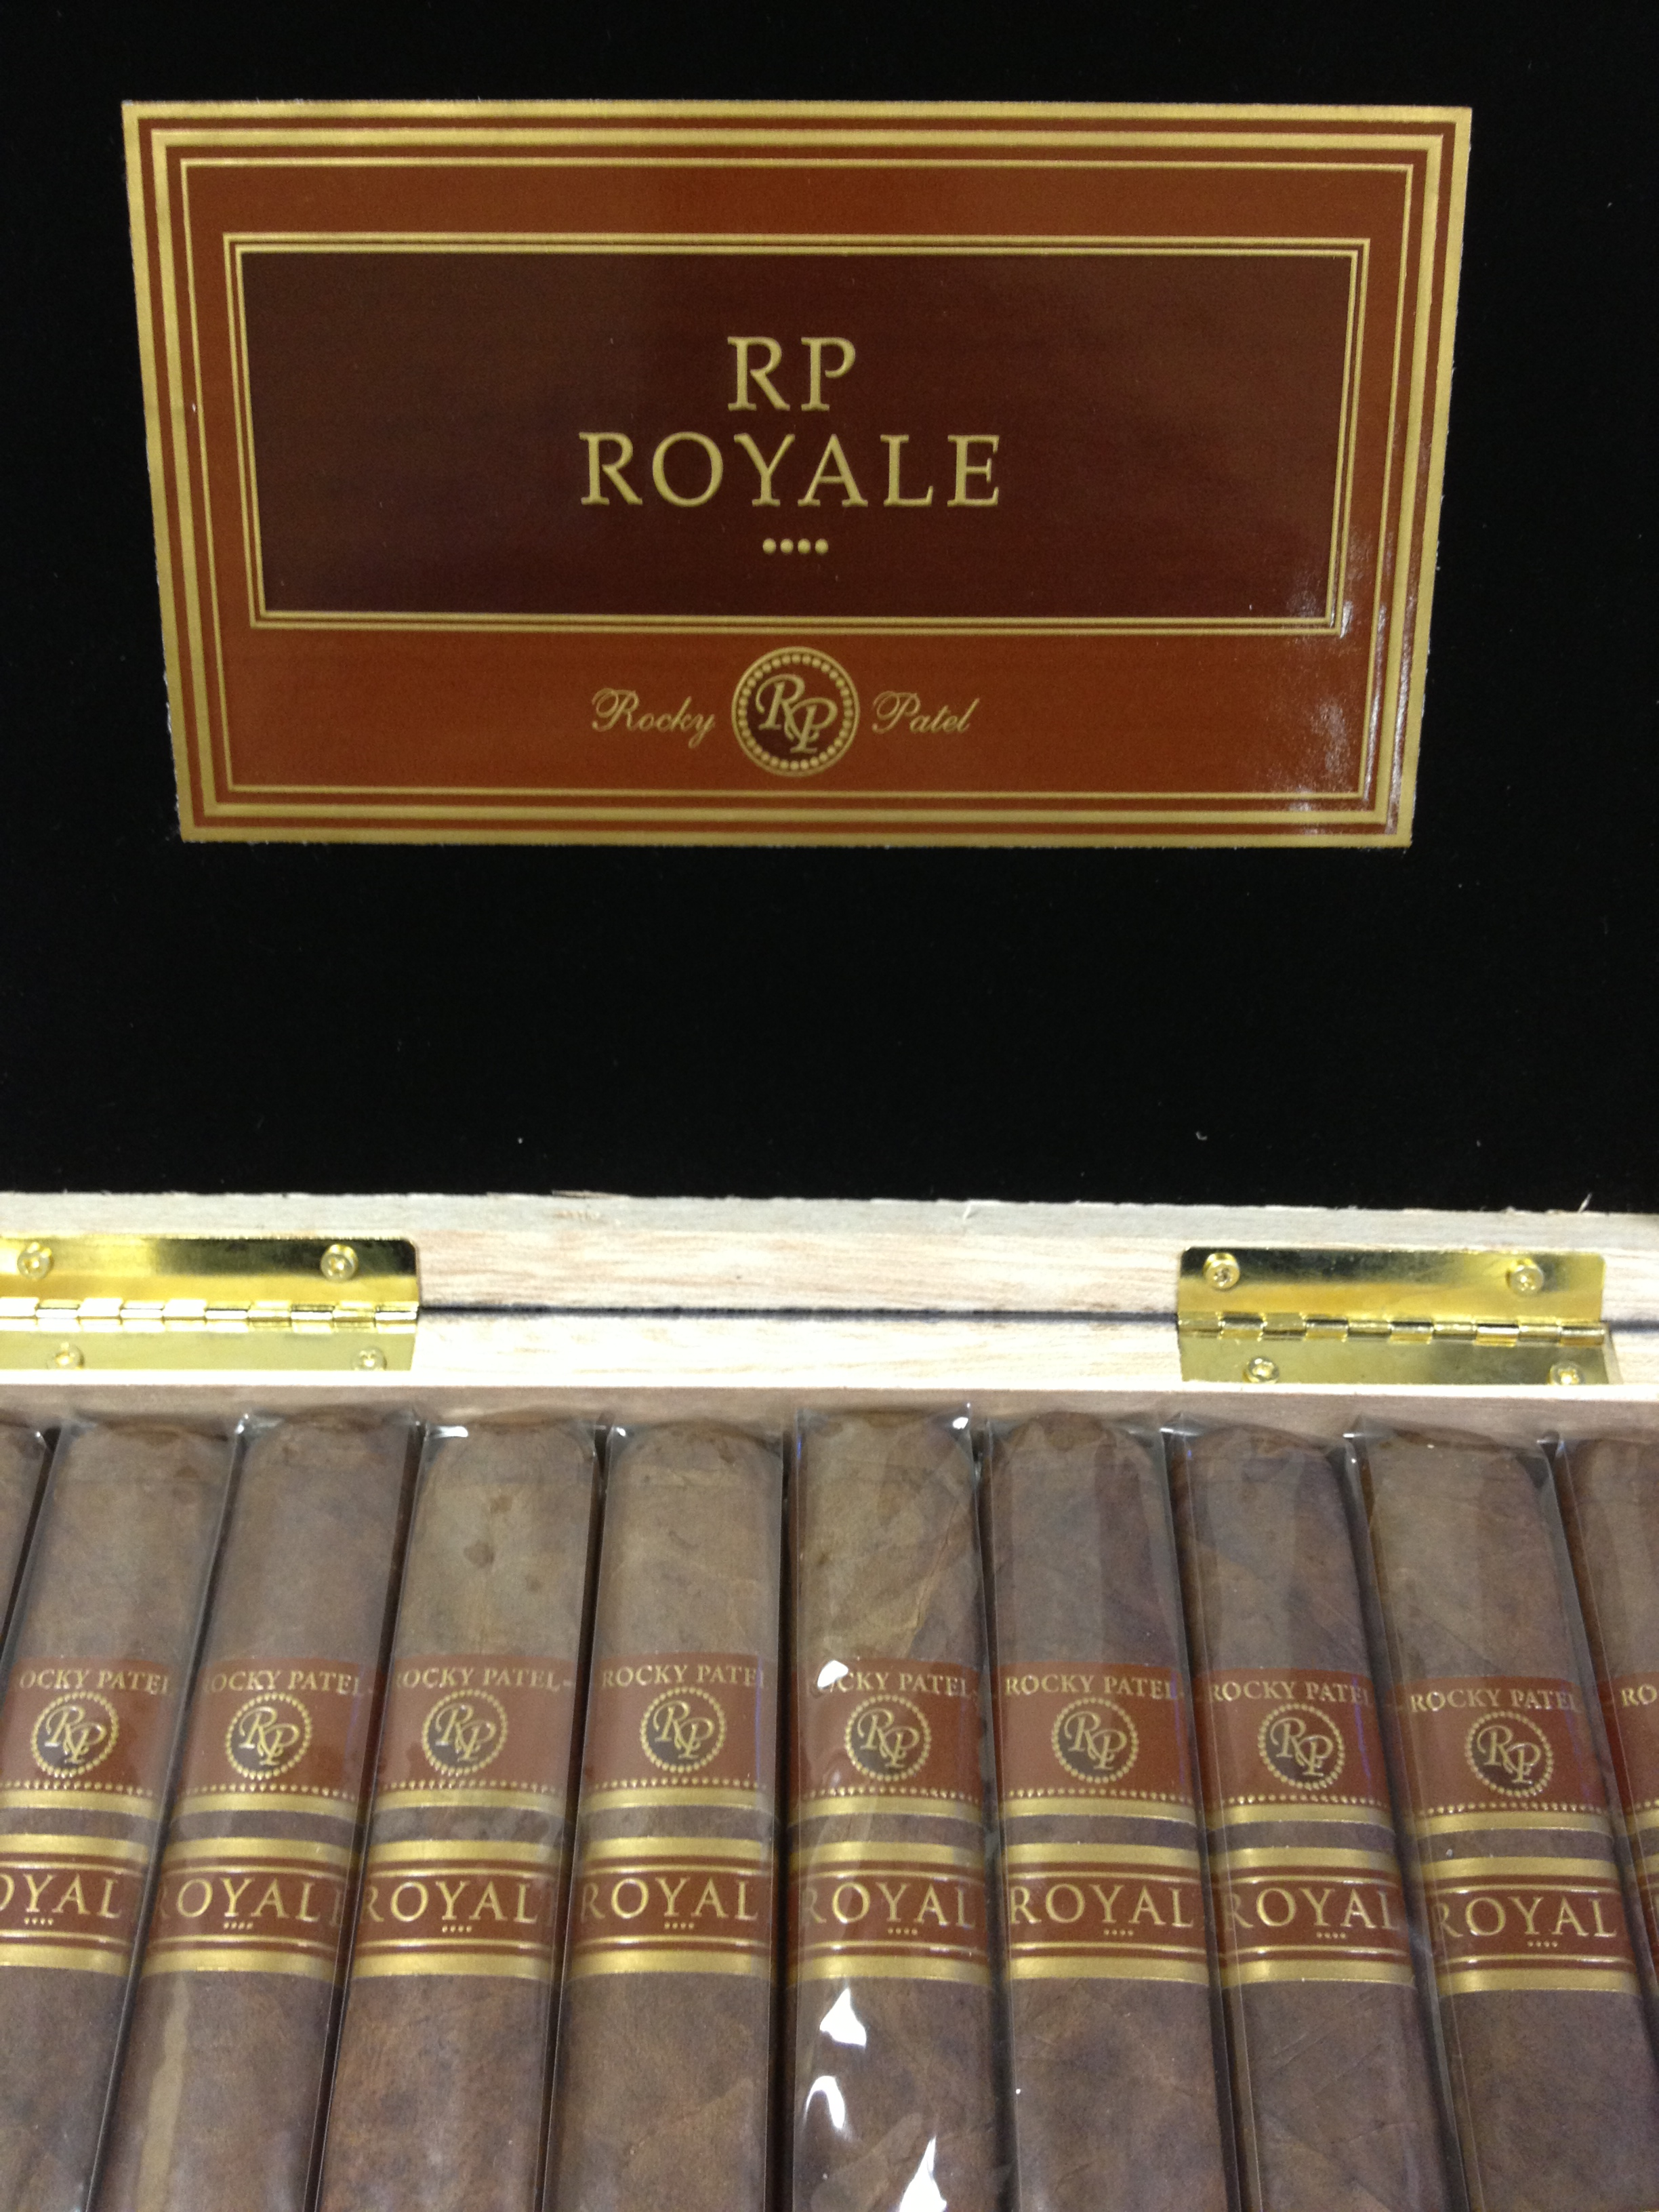 rocky patel royale toro cigars box open image